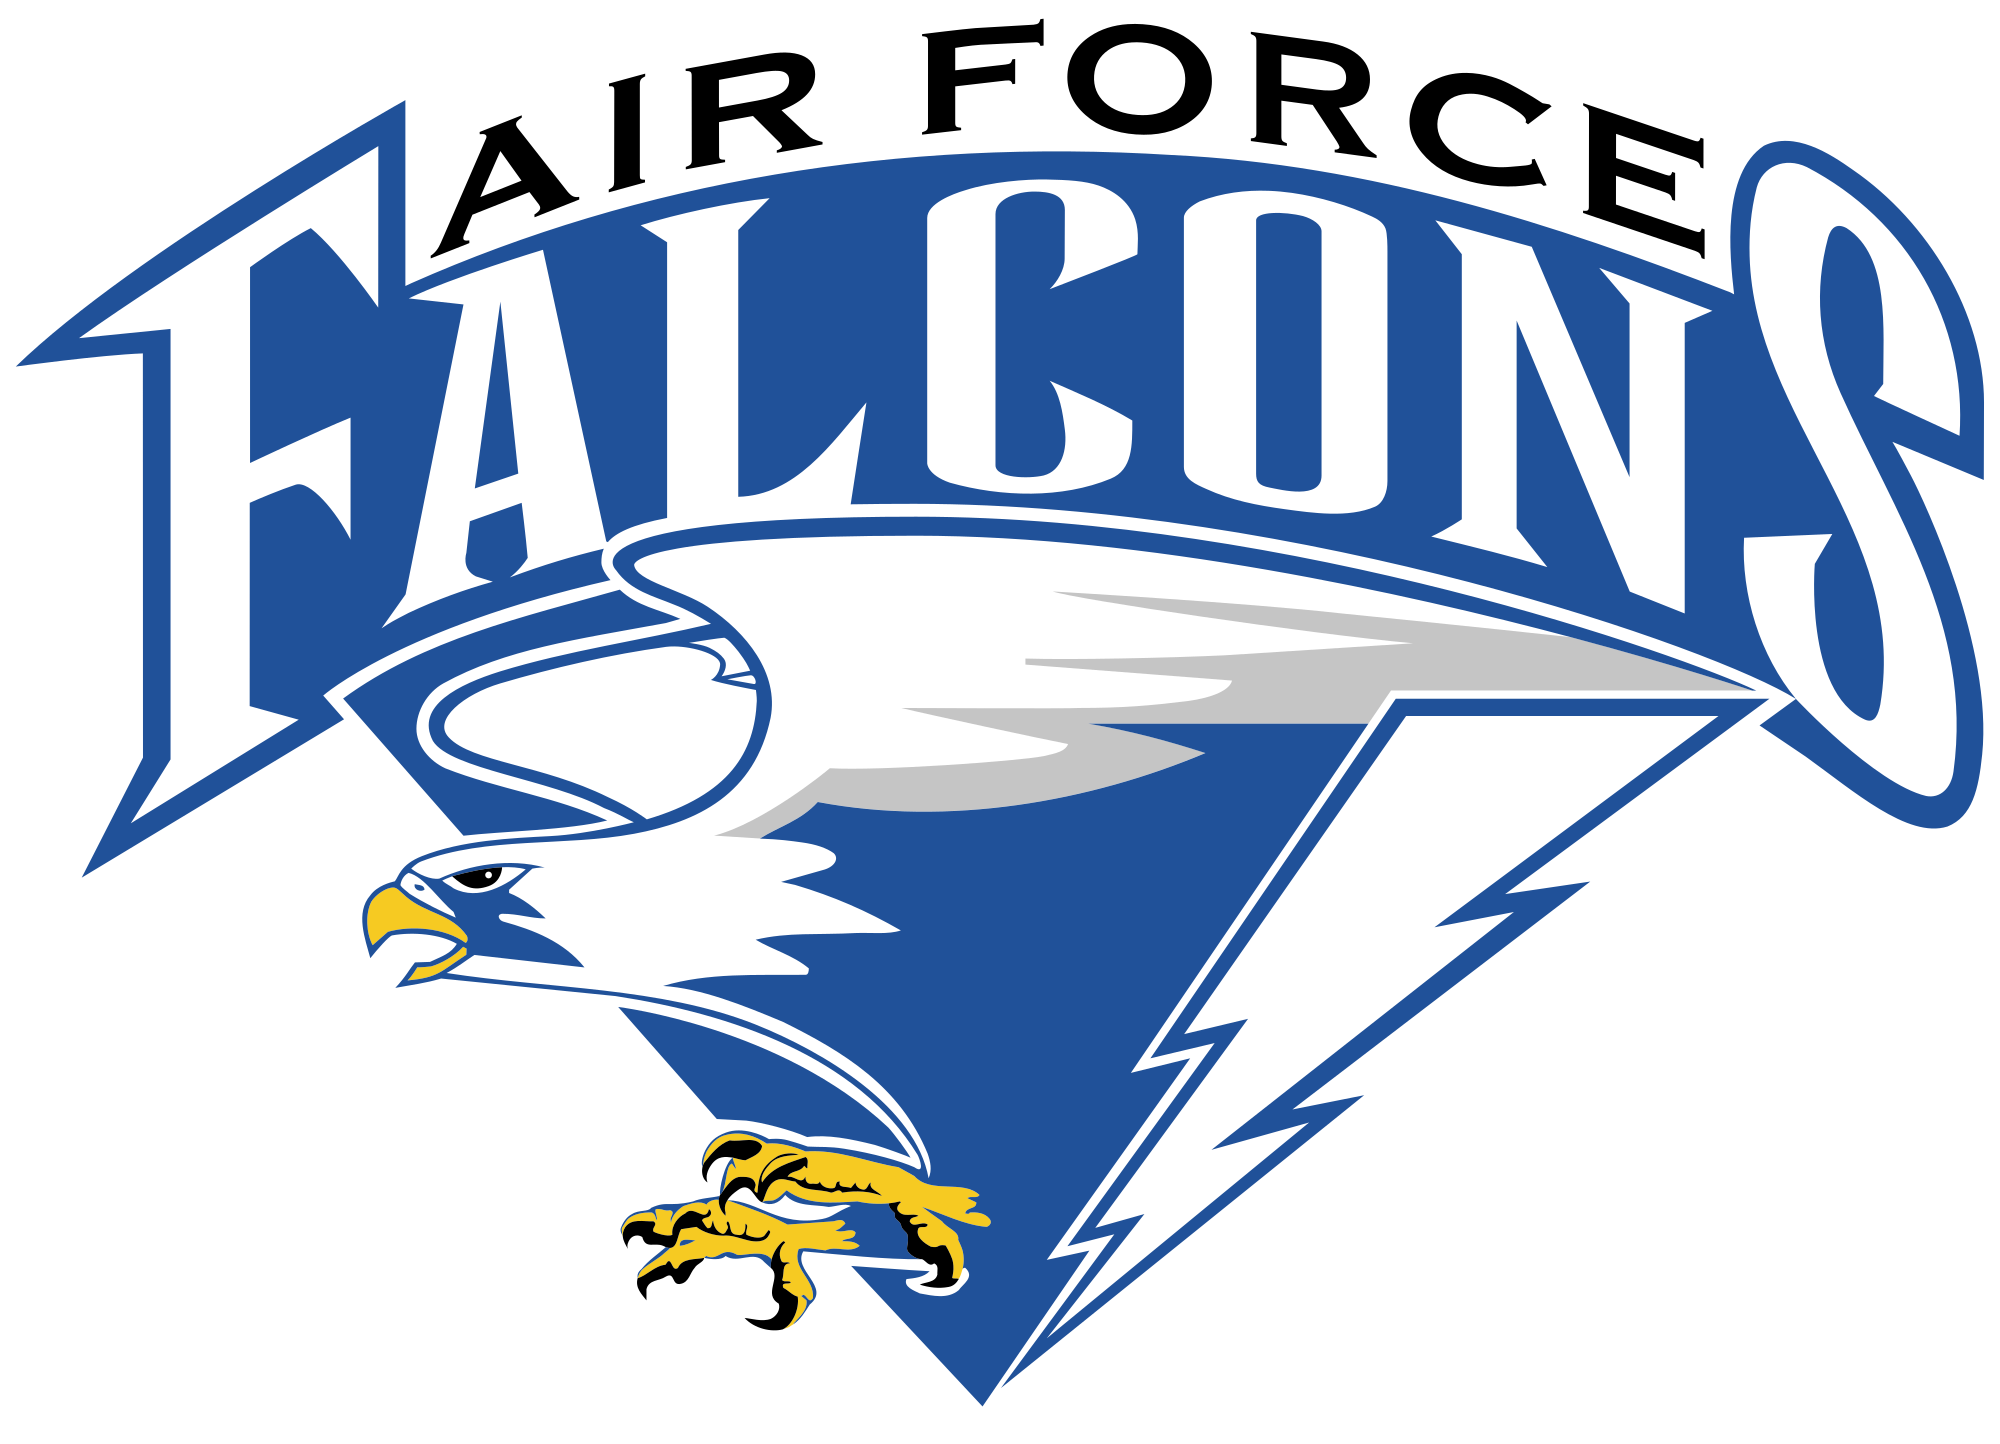 Football garland clipart jpg stock File:Air Force Falcons.svg - Wikimedia Commons jpg stock